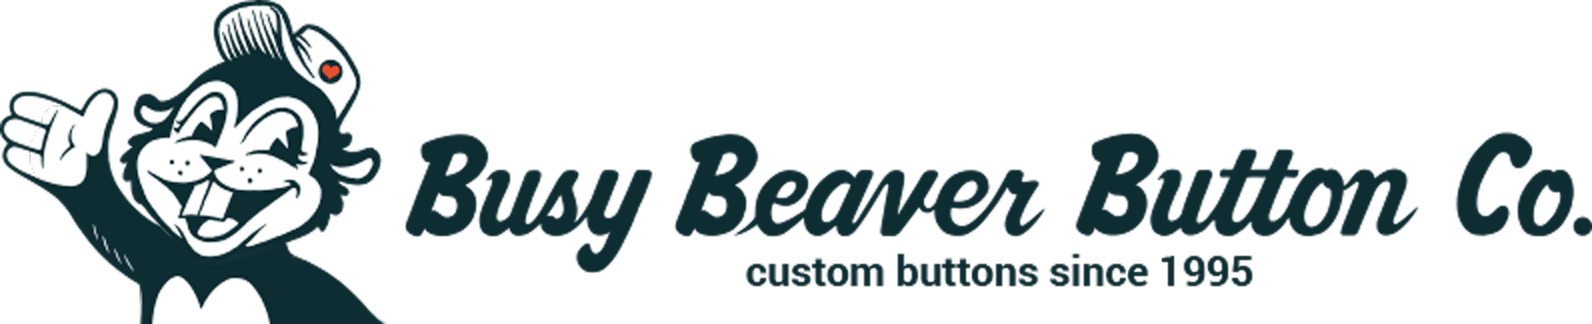 Every Button Has A Role To Play Busy Beaver Button Co